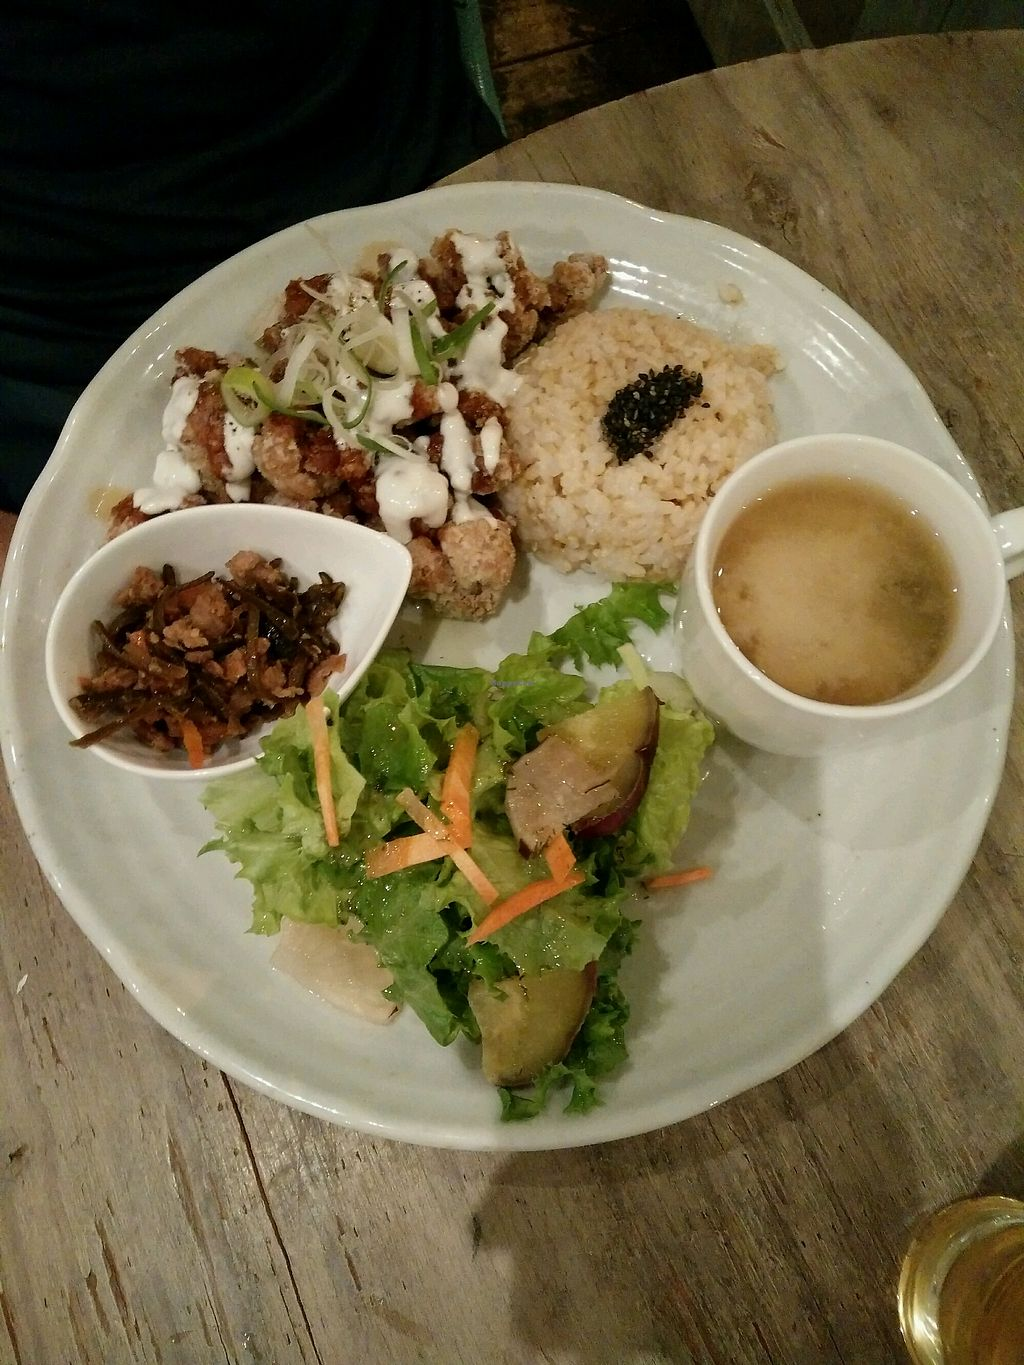 """Photo of Paprika Shokudo Vegan  by <a href=""""/members/profile/fatmeercat"""">fatmeercat</a> <br/>Karage set meal (marinated fried chicken) <br/> April 20, 2018  - <a href='/contact/abuse/image/45738/388497'>Report</a>"""